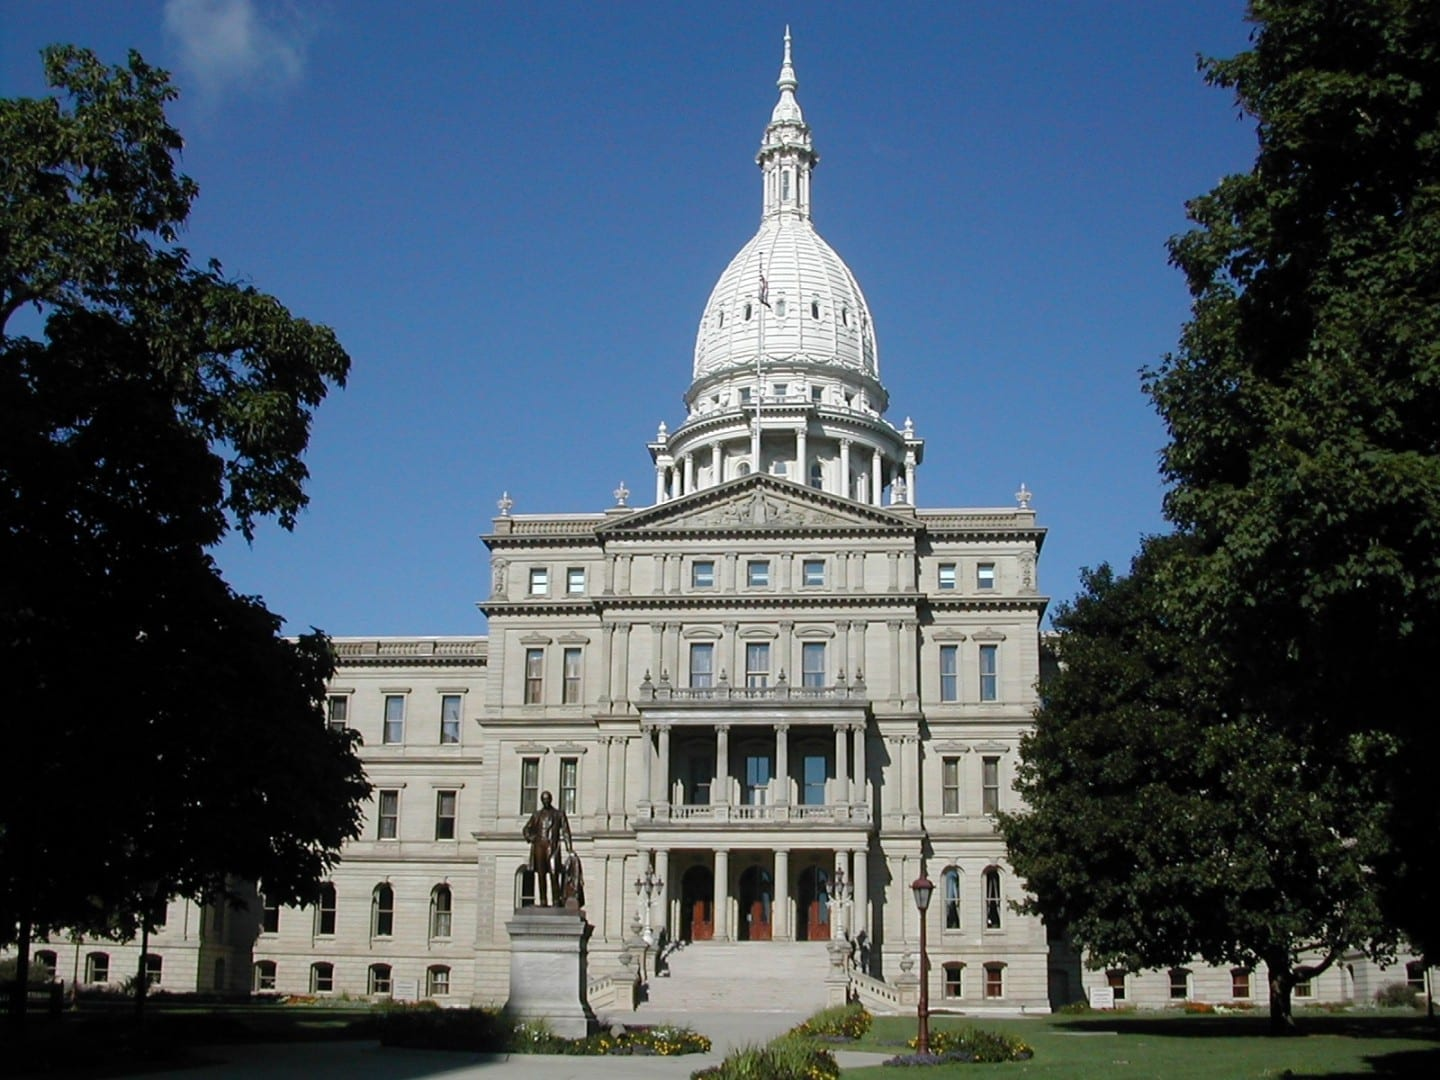 Capitolio del Estado de Michigan Lansing (Michigan) Estados Unidos